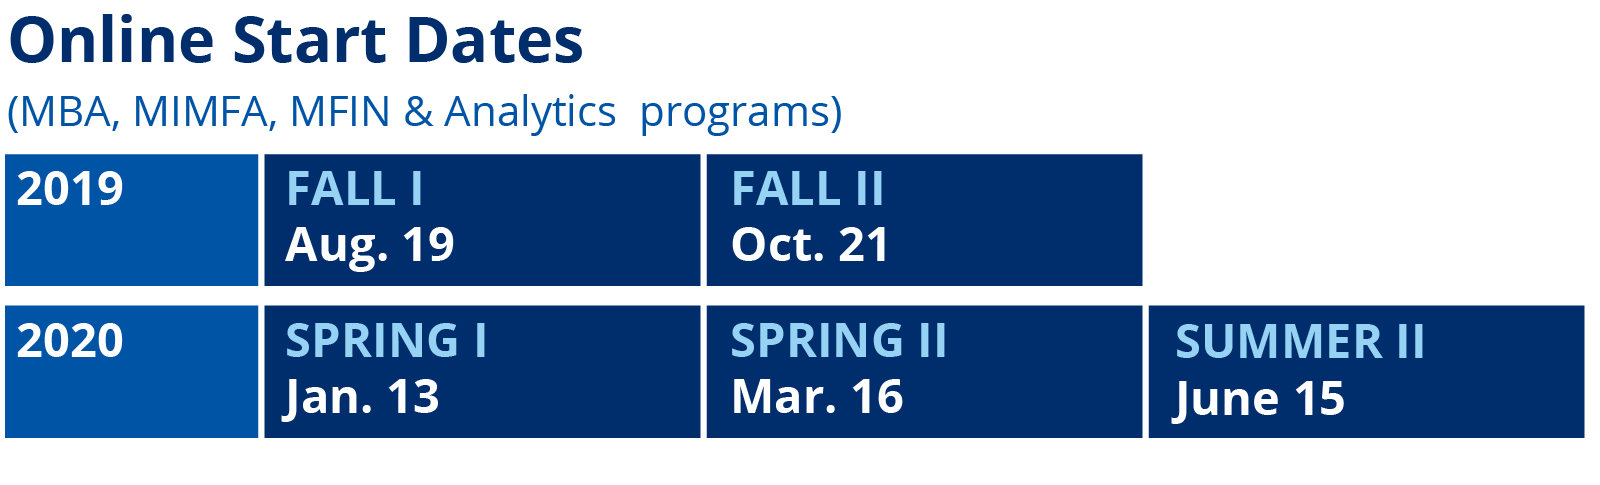 Online graduate school start dates